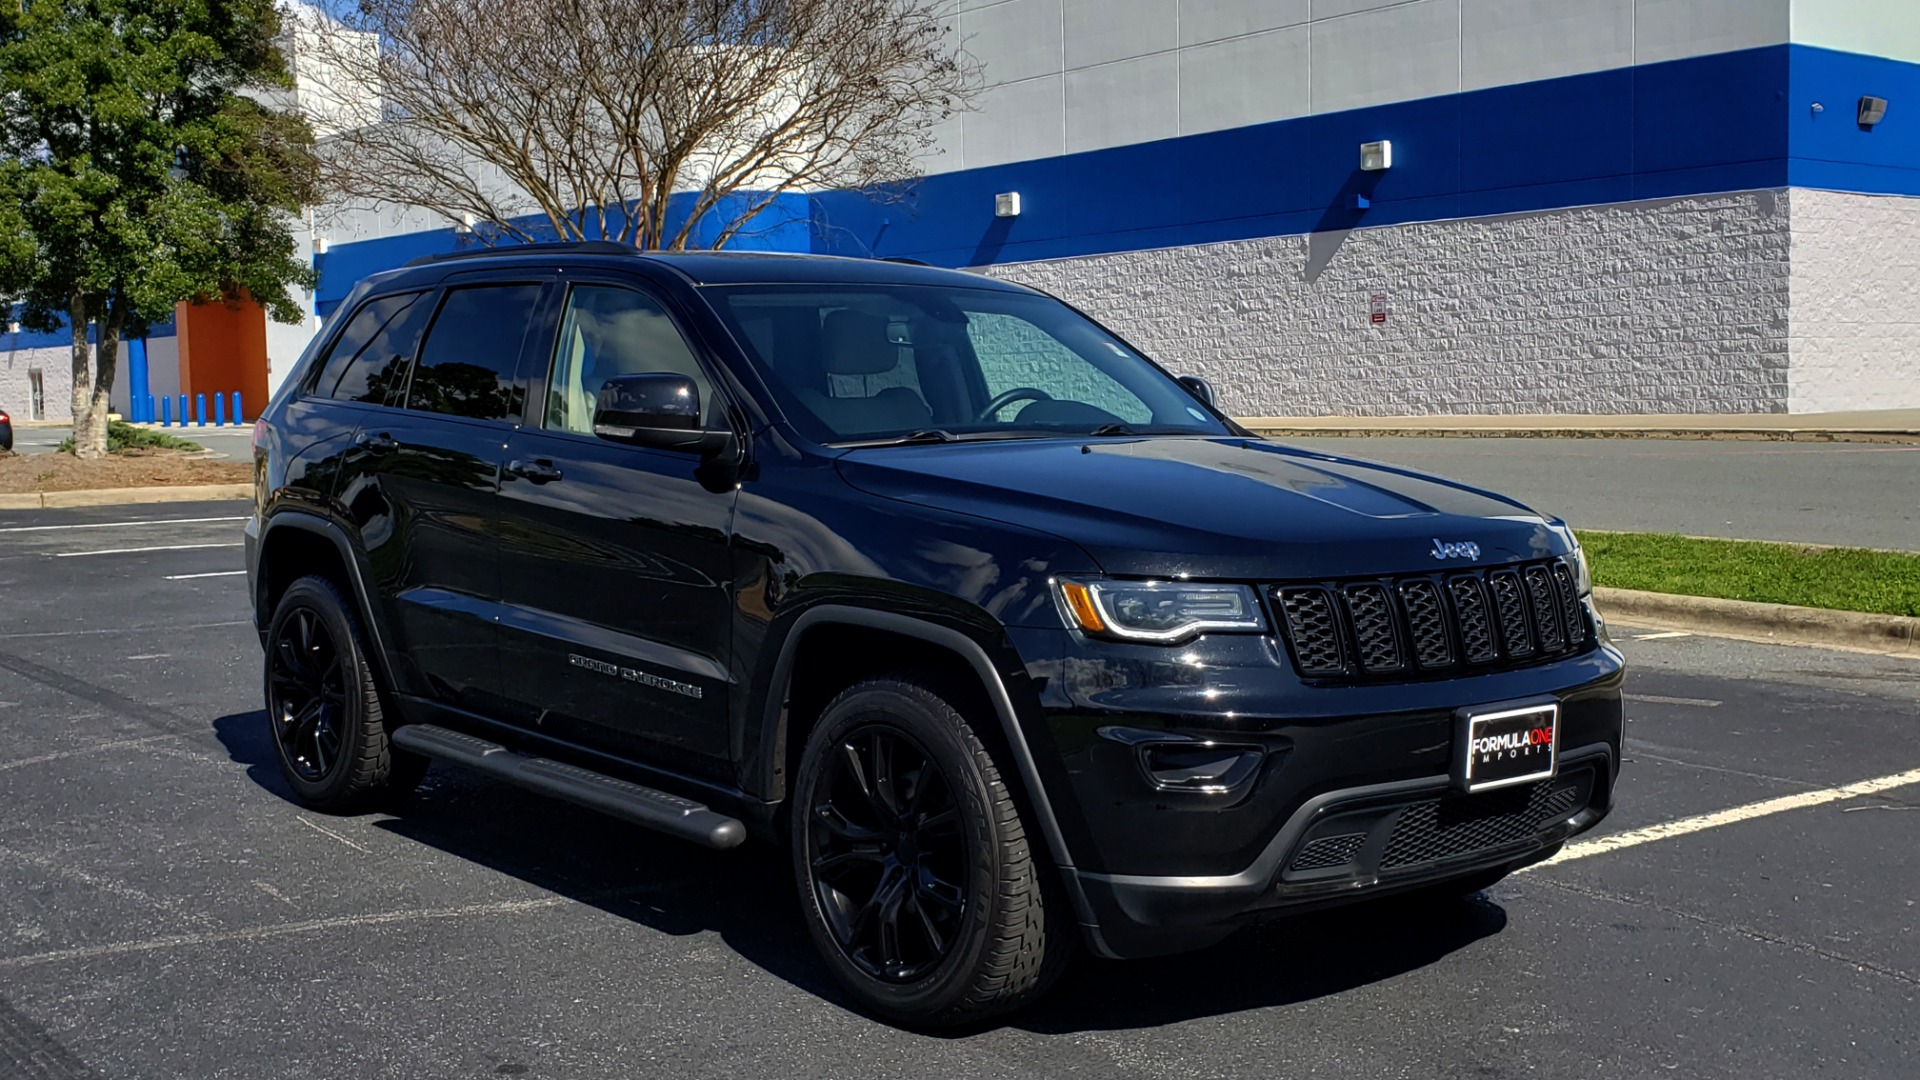 Used 2018 Jeep GRAND CHEROKEE LIMITED 4X4 / NAV / SUNROOF / HTD STS / REARVIEW for sale Sold at Formula Imports in Charlotte NC 28227 11